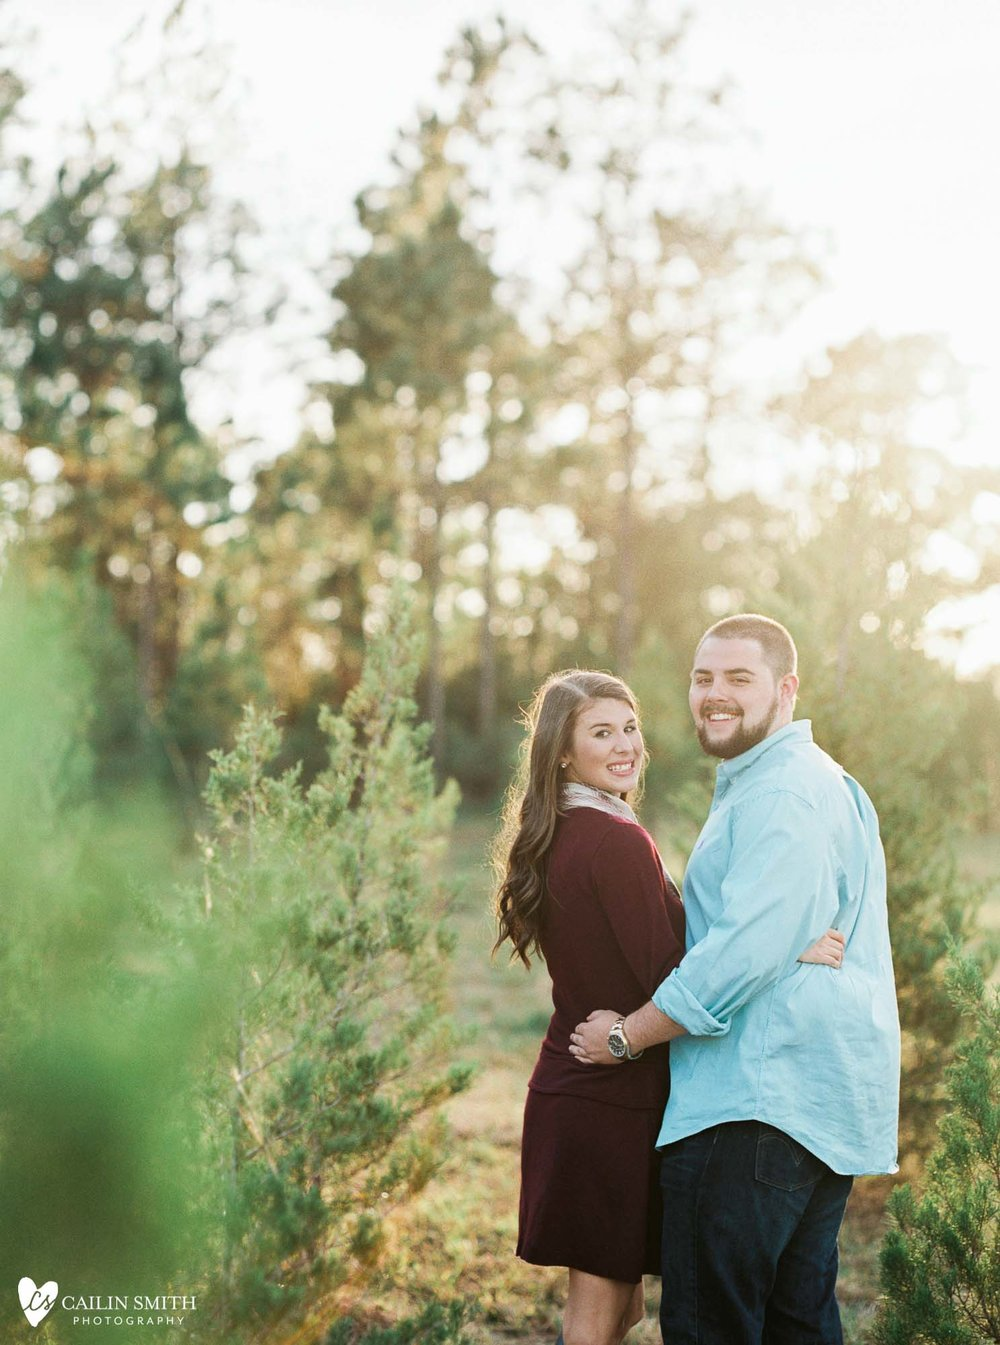 Elyssa_Caleb_Tree_Farm_Engagement_Photography_Jacksonville_018.jpg